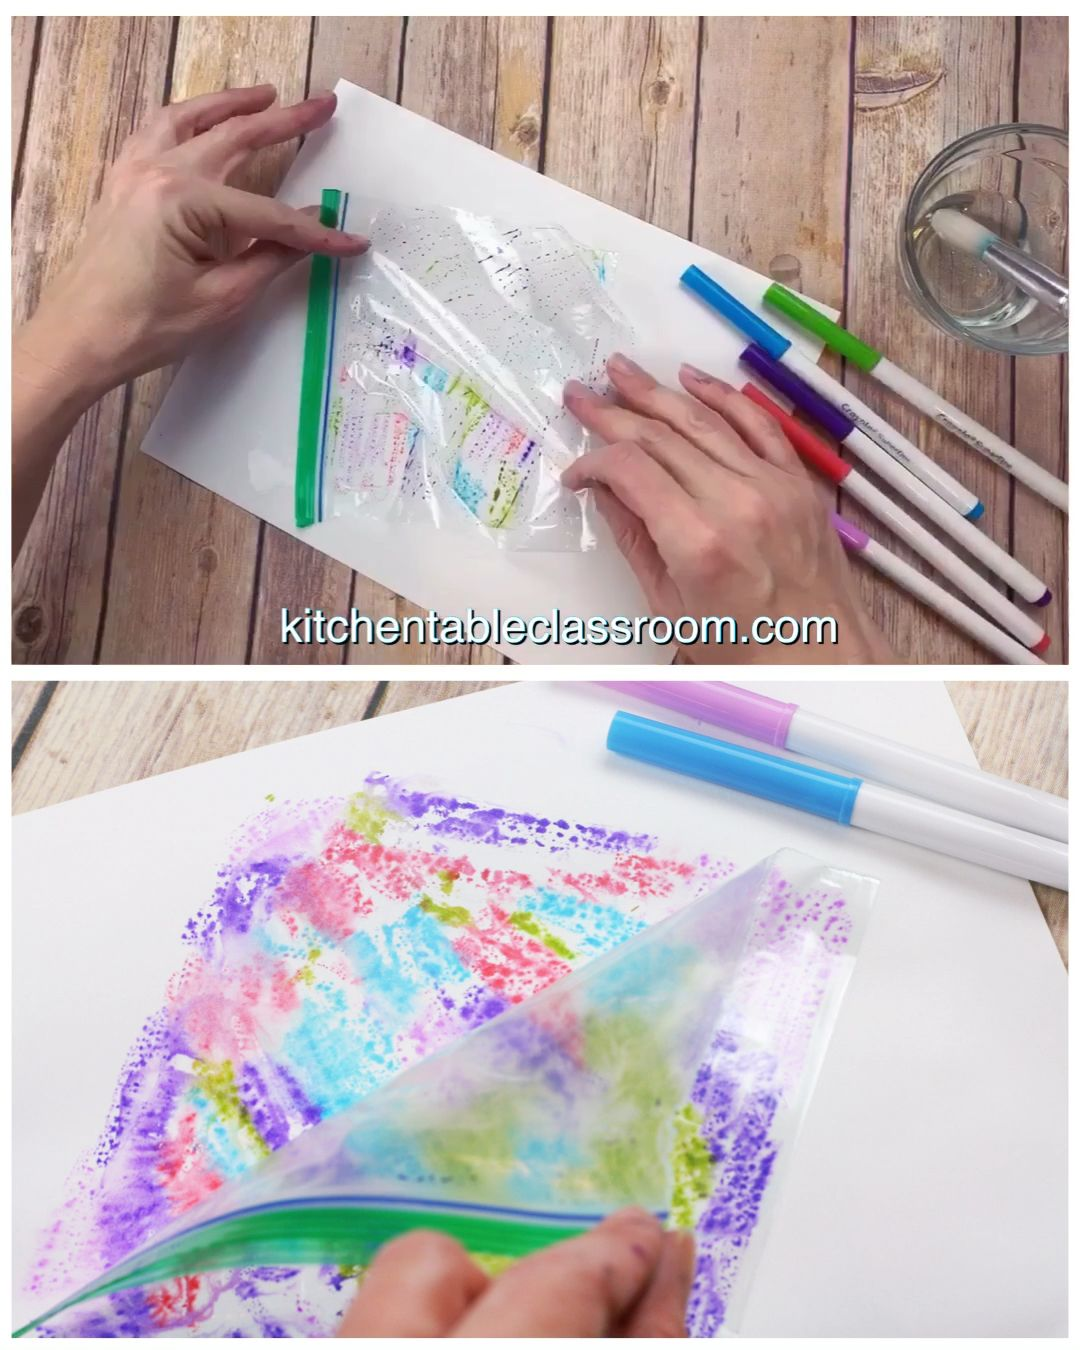 Abstract Watercolor PaintingEasy Abstract Art for KIds  The Kitchen Table Classroom Use washable markers and a recycled plastic bag for this simple abstract watercolor pa...